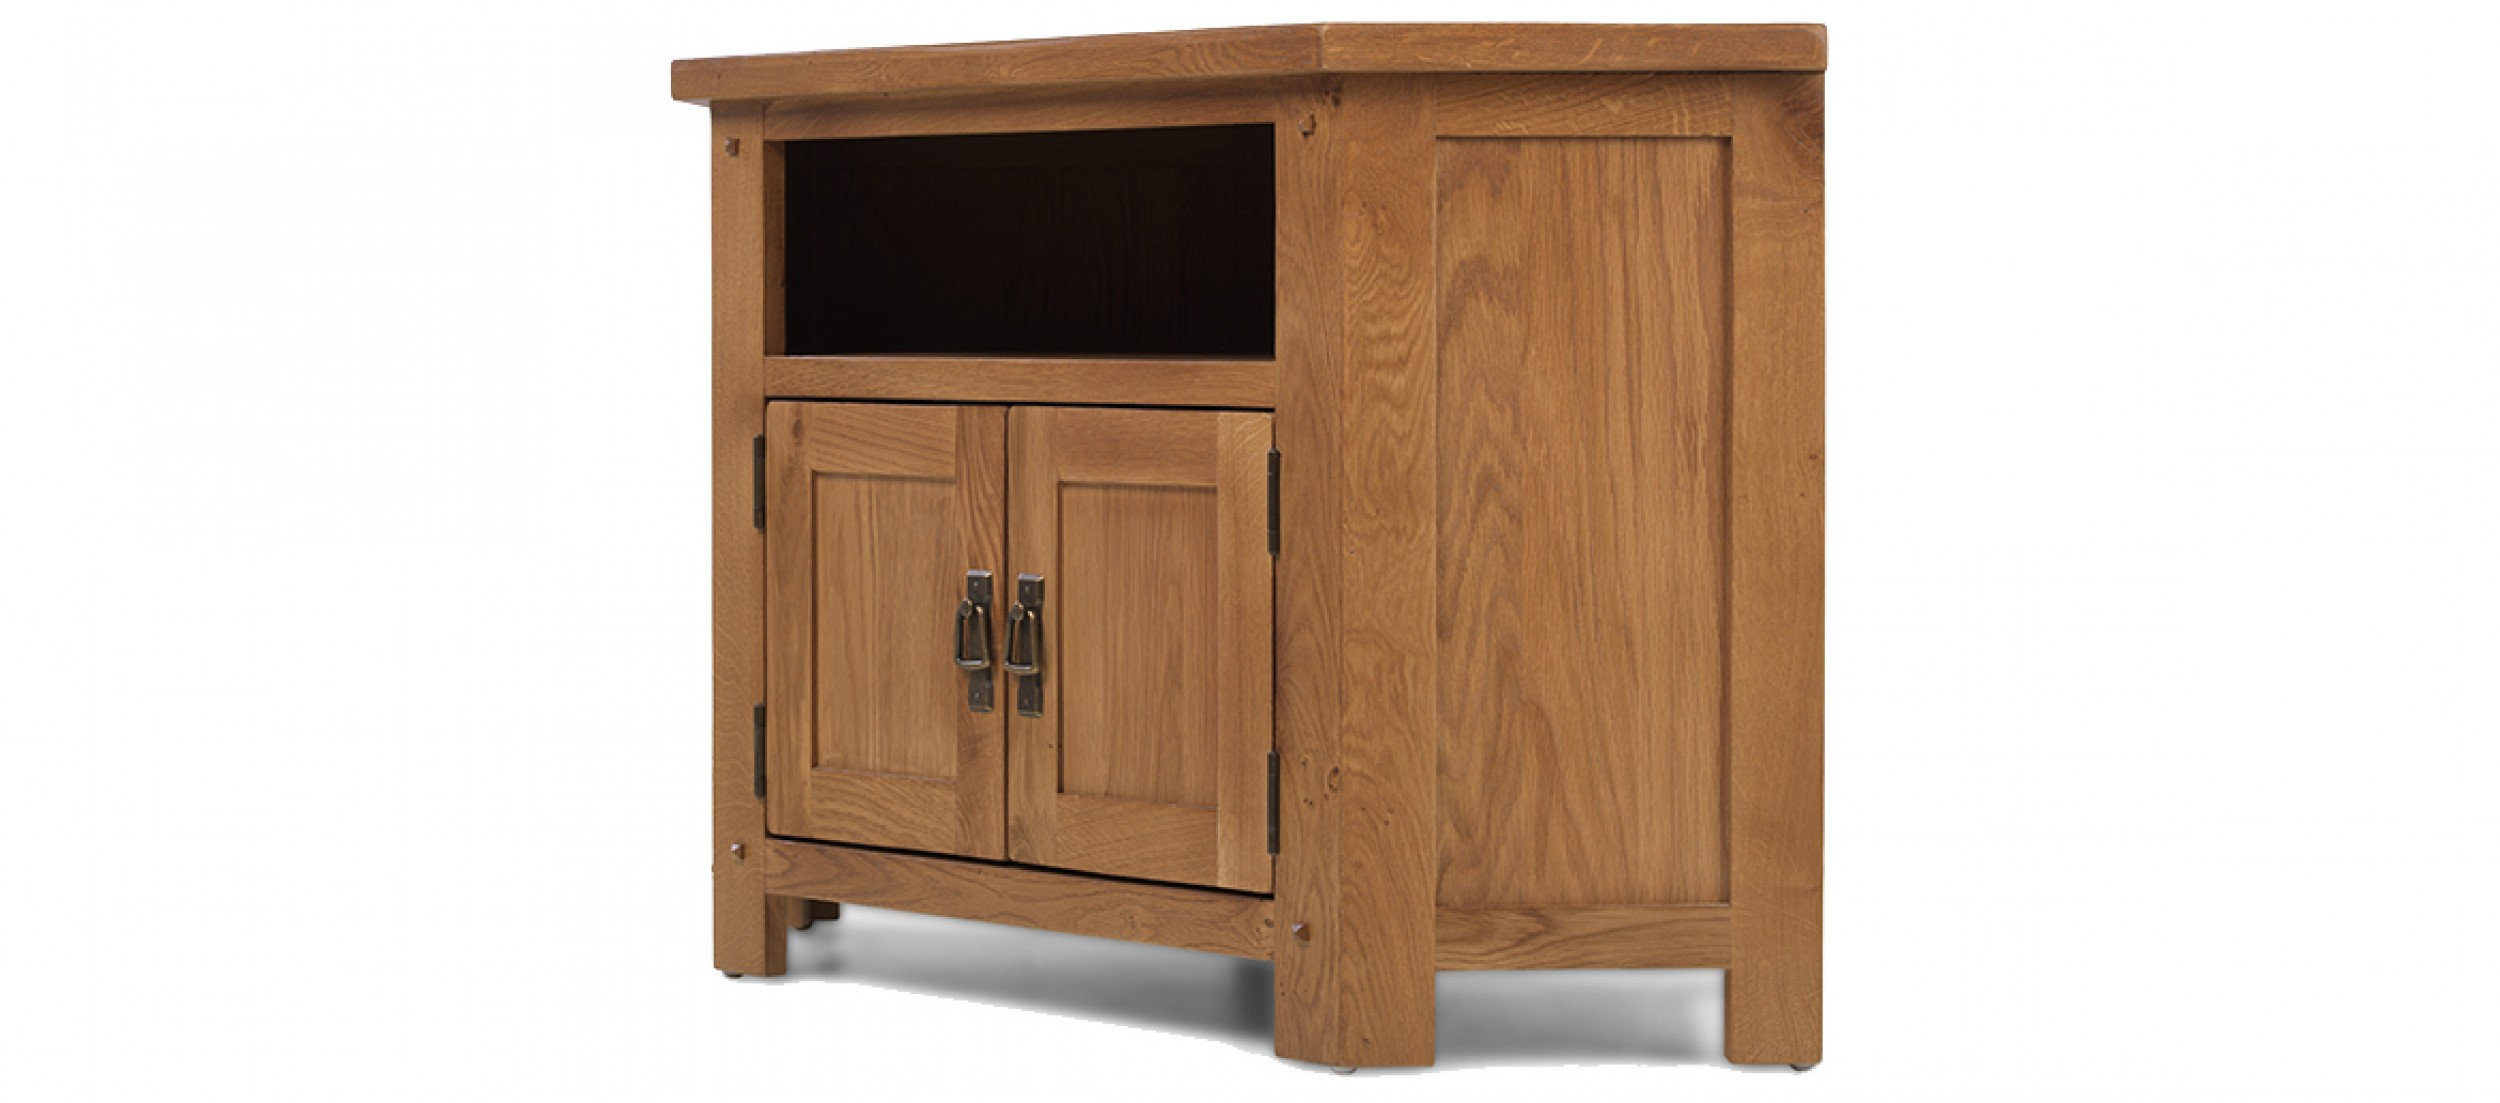 Fantastic Rustic Oak Corner TV Cabinet | Quercus Living CR79